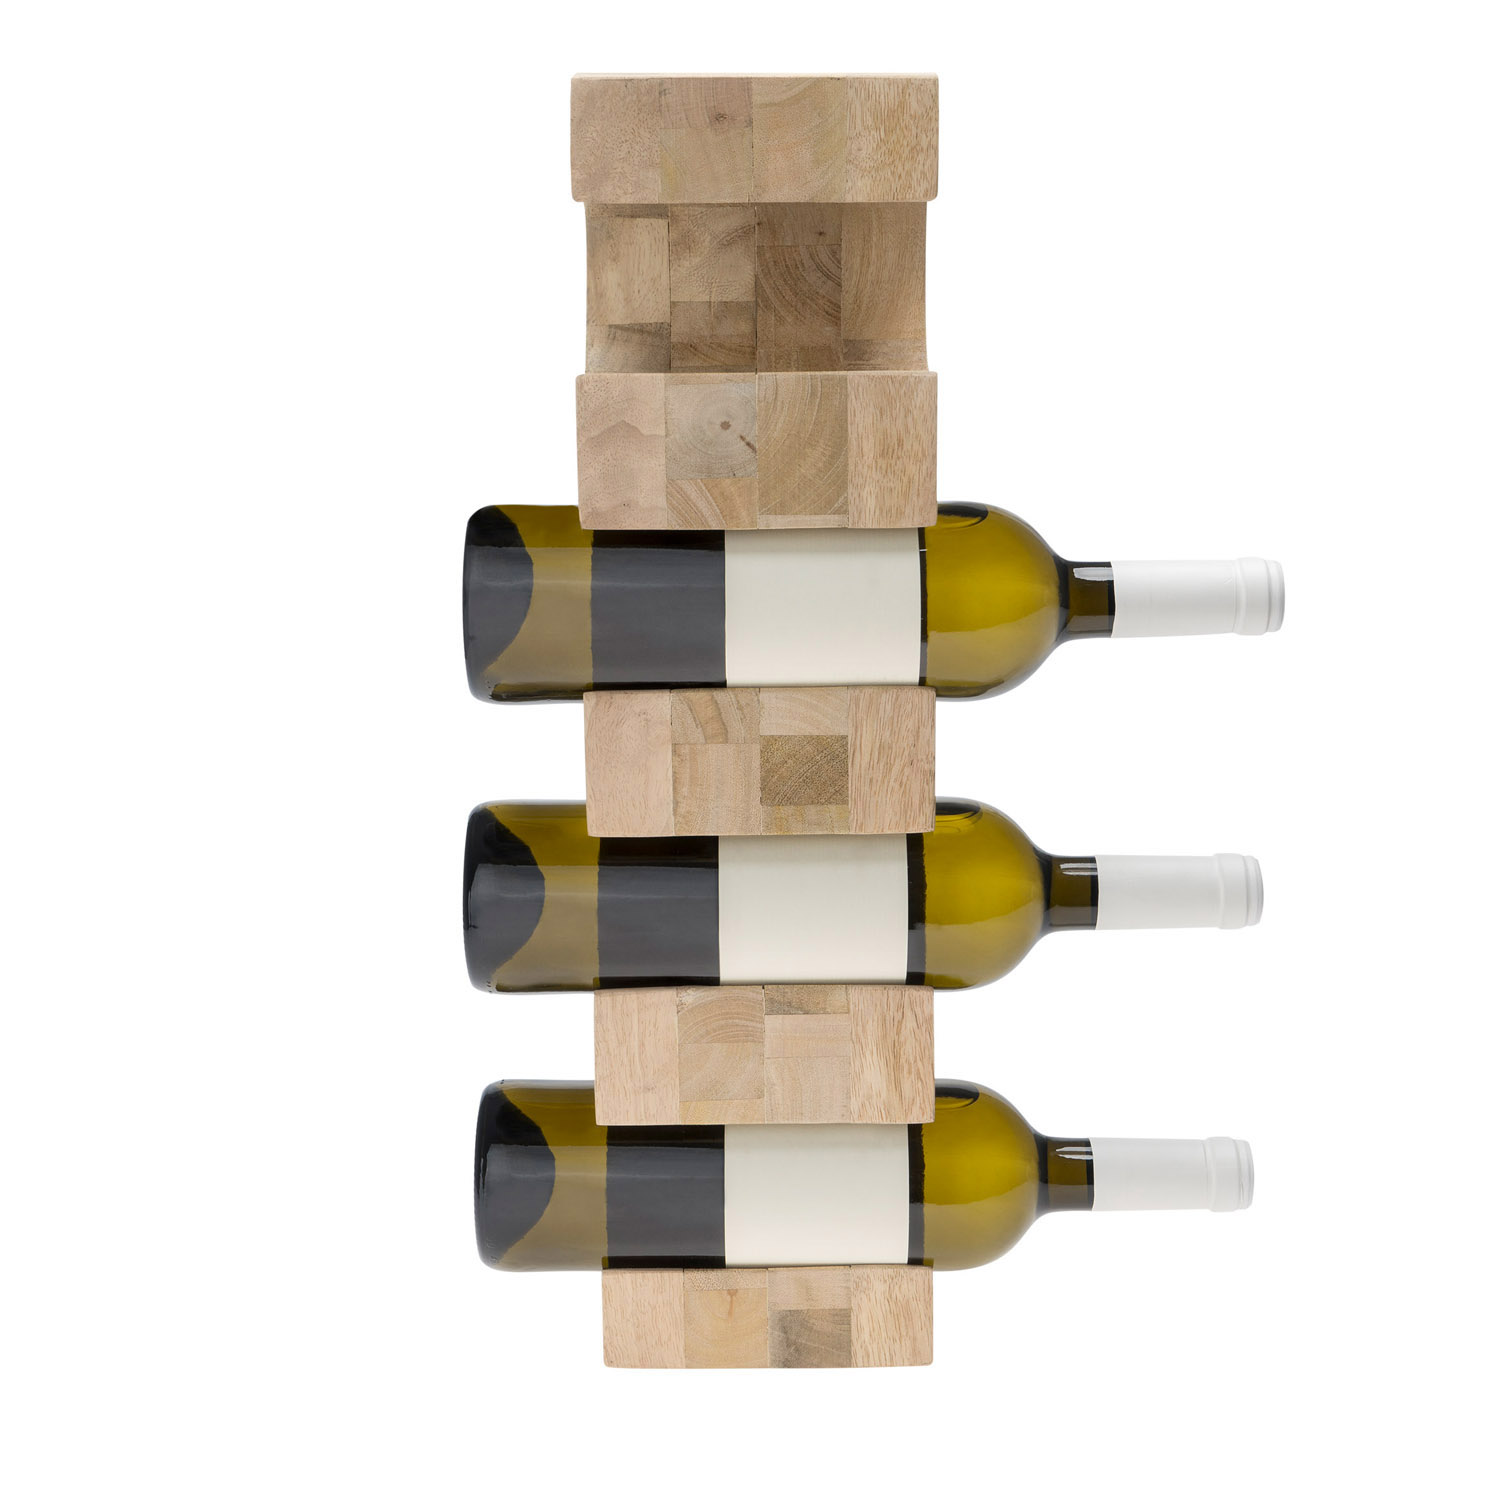 otellero Vino 4 Botellas en Madera de Mango Color Natural - Estante Vinoteca para Bodega Despensa Mu